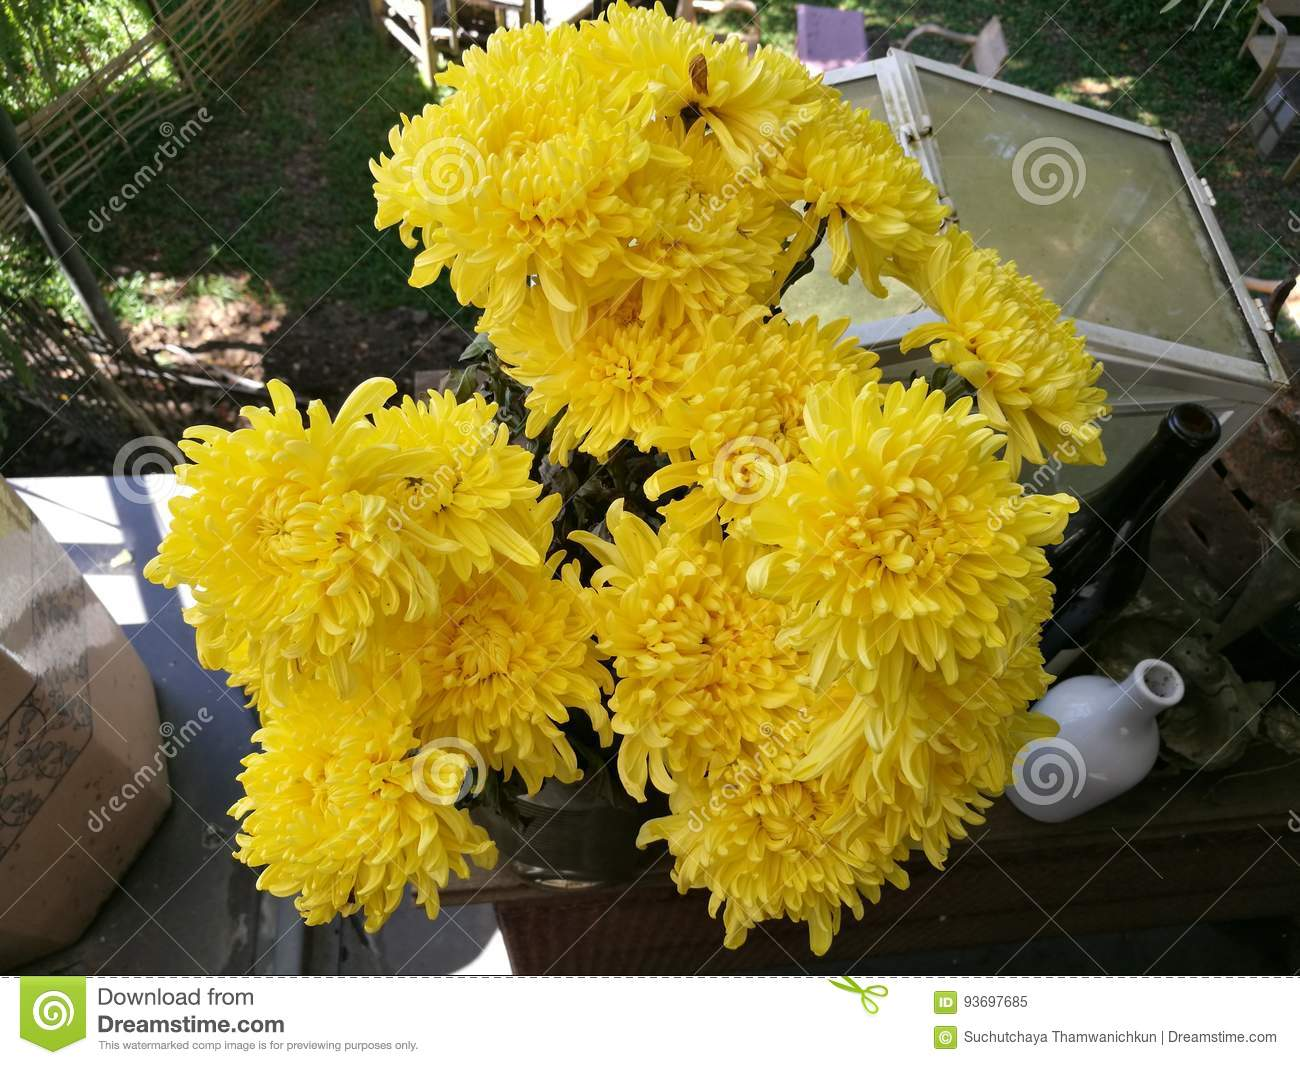 Yellow flowers of chrysanthemum in garden on sunny day beautiful download yellow flowers of chrysanthemum in garden on sunny day beautiful blooming potted mums flower mightylinksfo